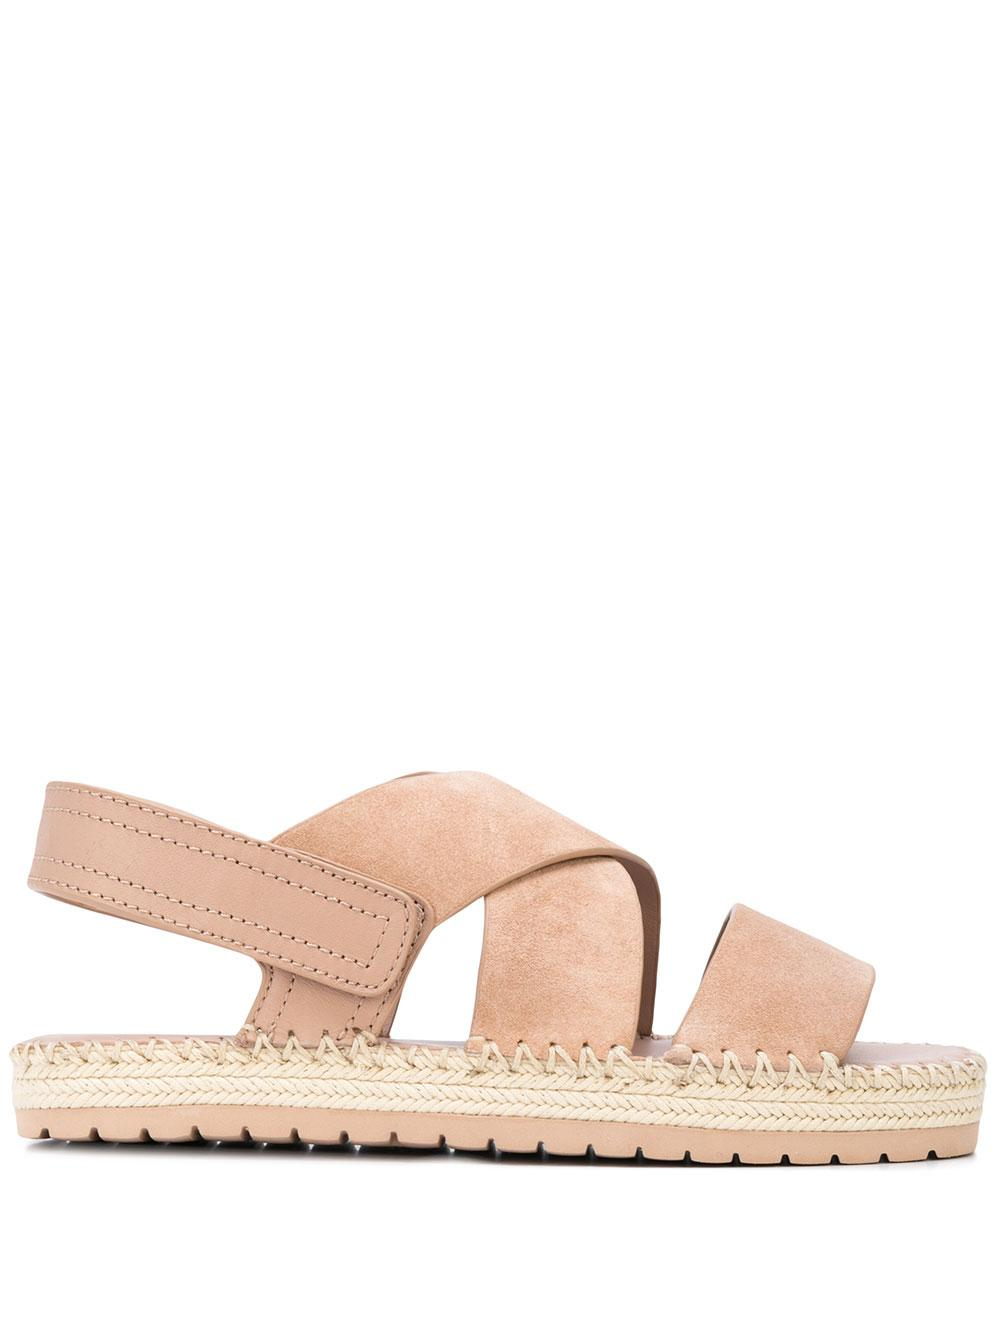 Suede Strappy Flat Sandal Item # TENISON2